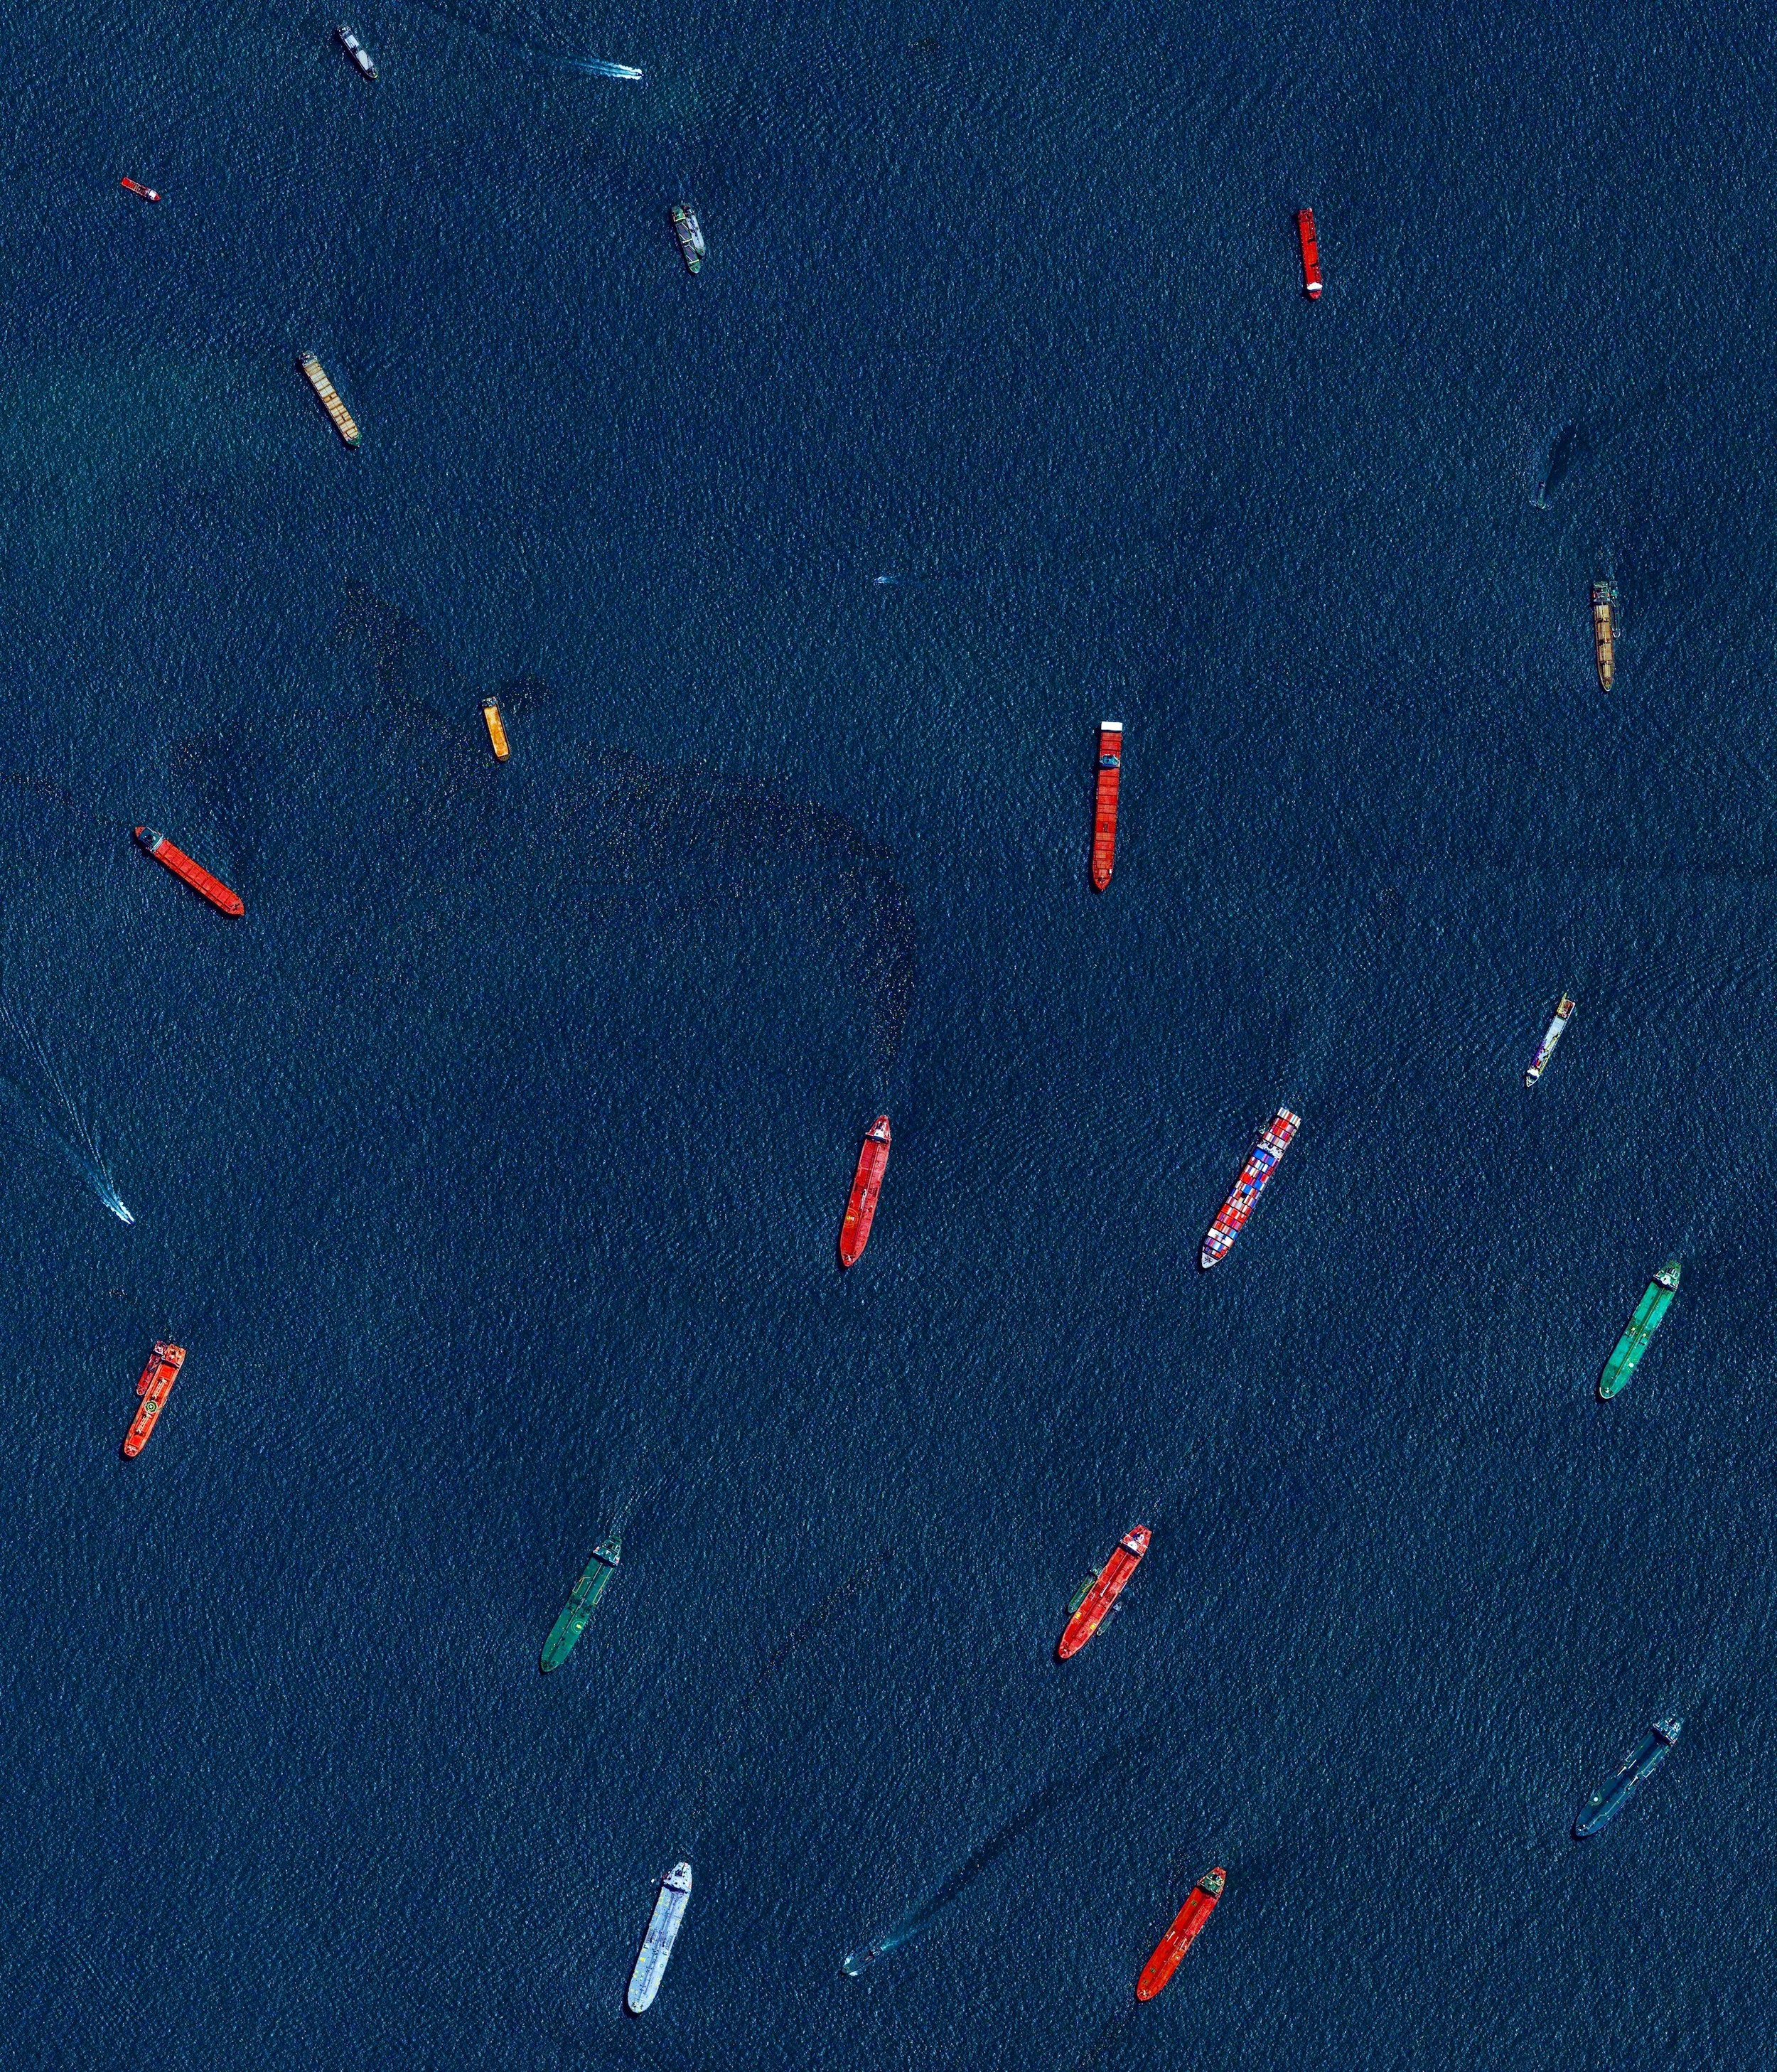 """Check out this Overview, which captures cargo ships and tankers — some weighing up to 300,000 tons — outside of the entry to the Port of Singapore. The facility is the world's second-busiest port in terms of total tonnage, shipping a fifth of the world's cargo containers and half of the world's annual supply of crude oil.  1°15'21.4""""N, 103°46'51.6""""E  Source imagery: DigitalGlobe"""